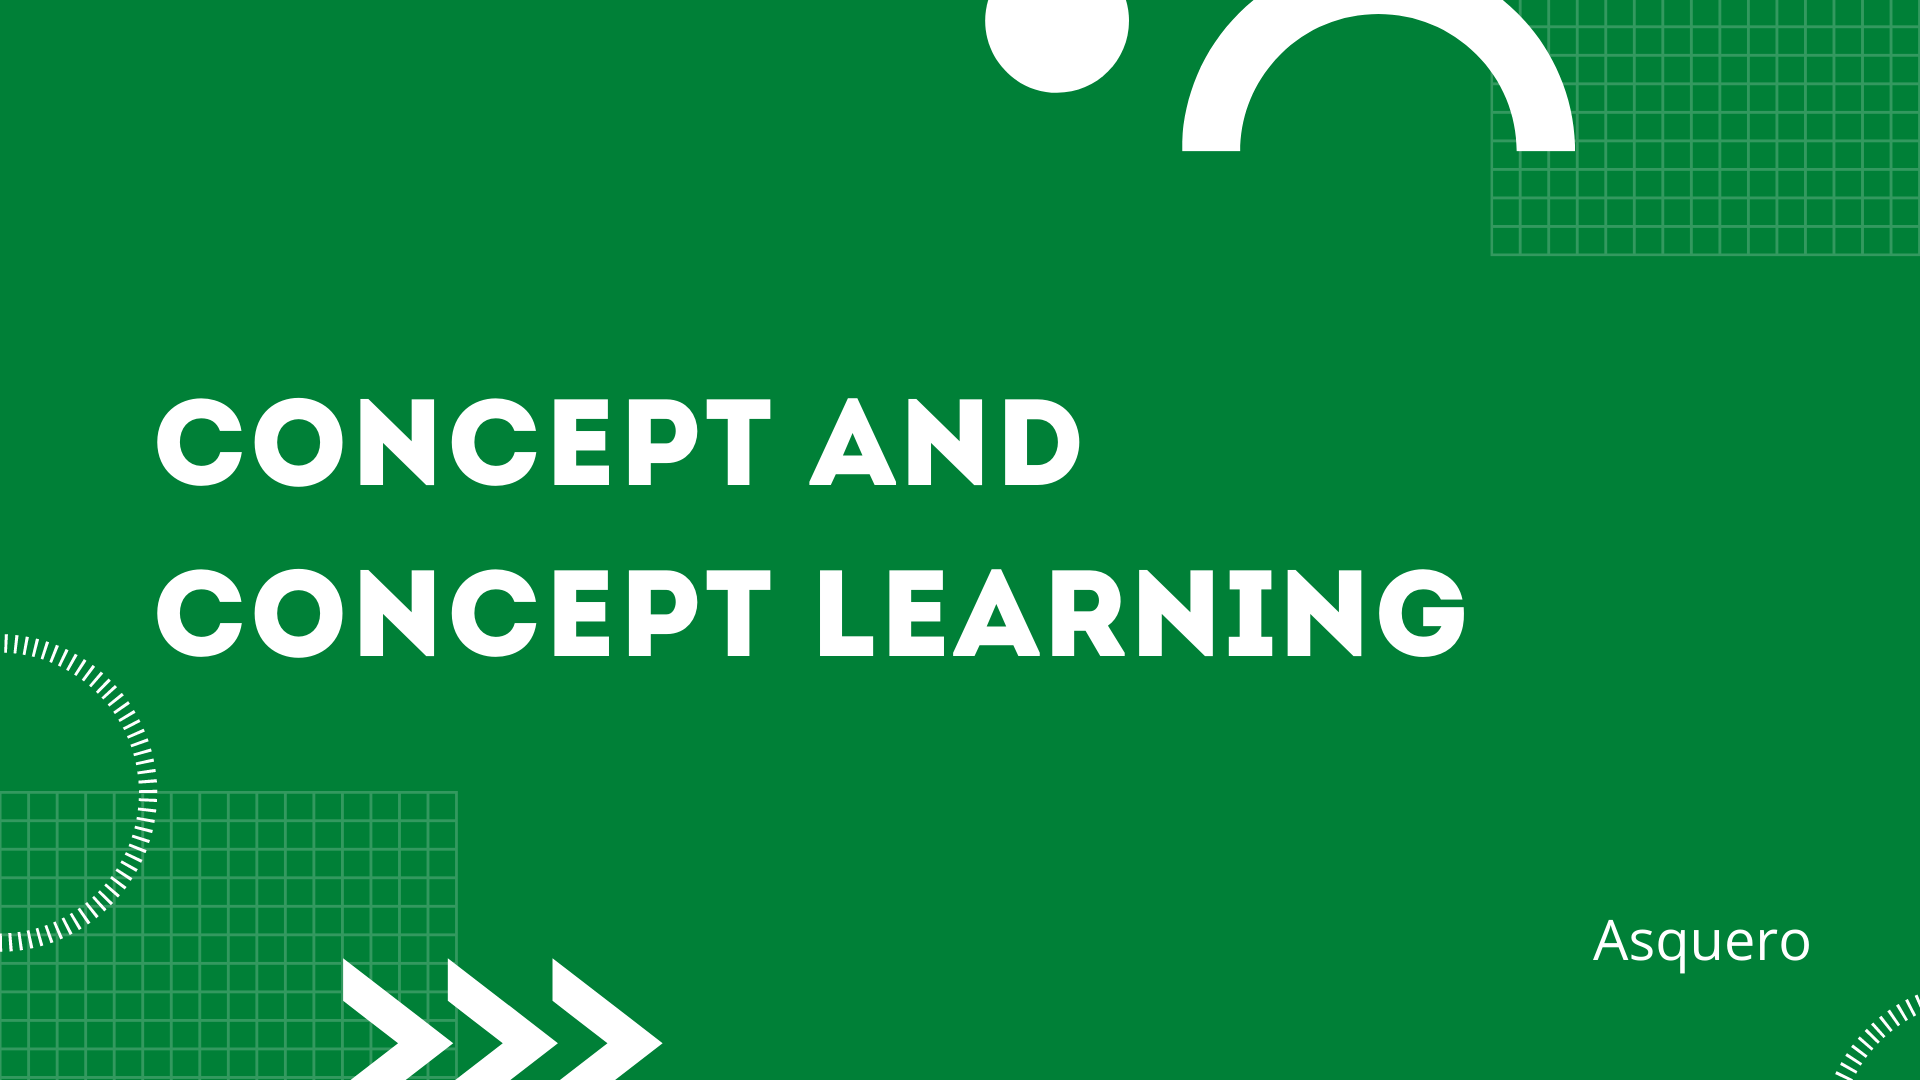 Concept and Concept Learning